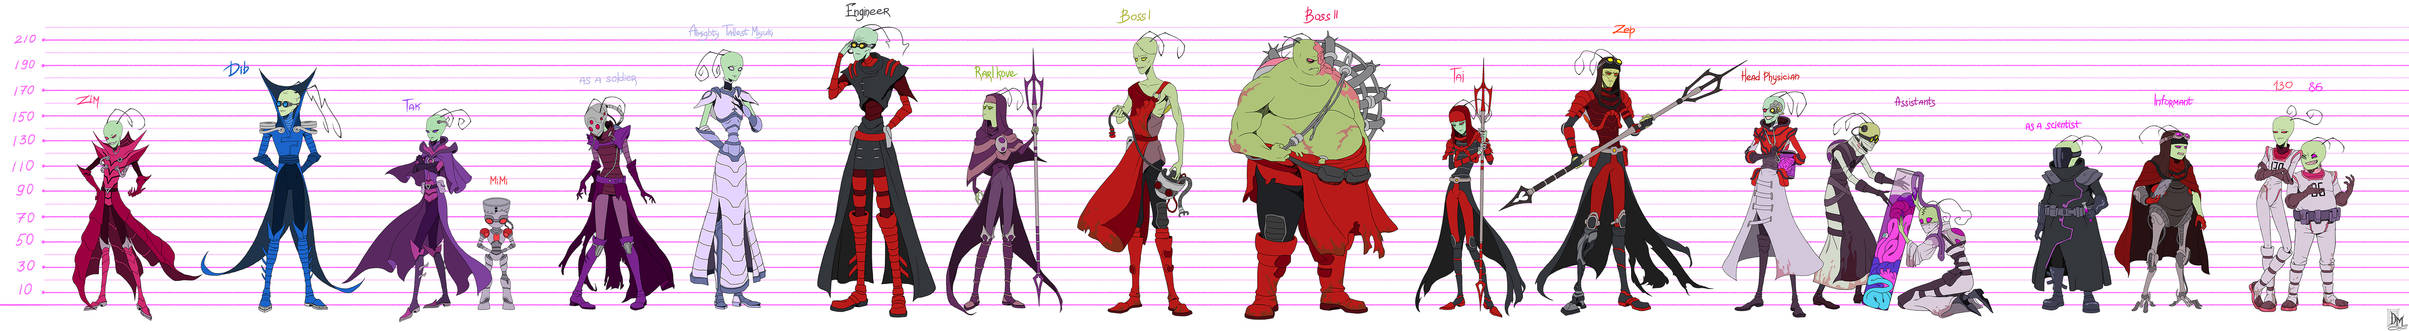 Invader Dib characters